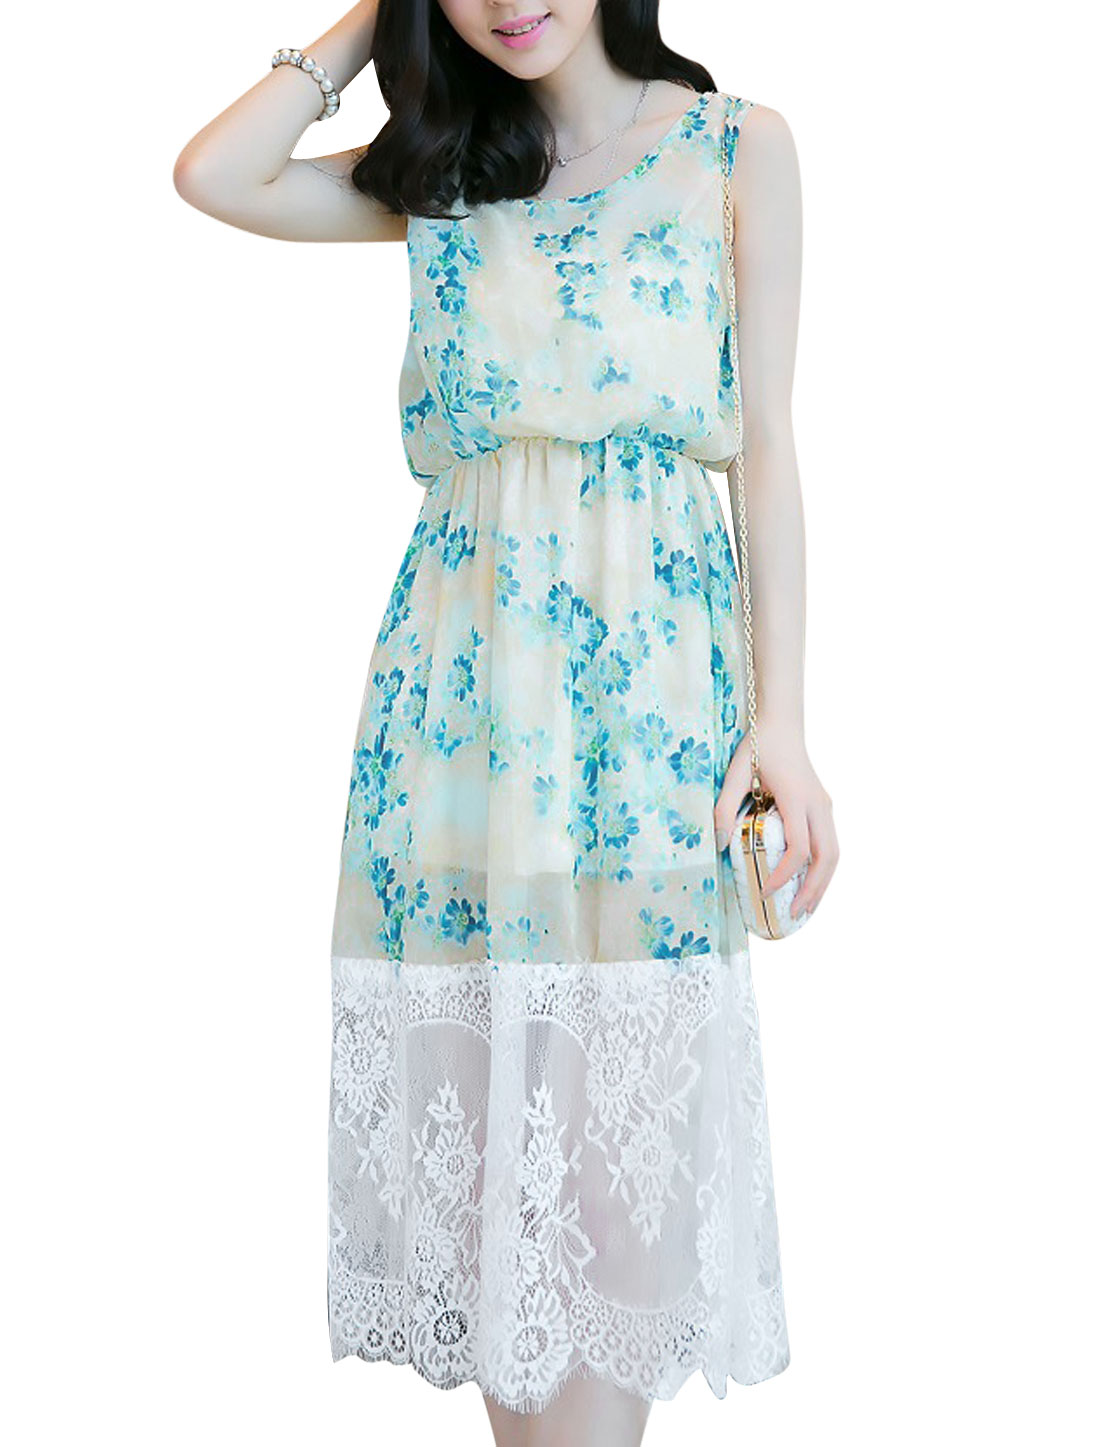 Women Lace Splicing Stretchy Waist Sweet Chiffon Tank Dress Turquoise Beige S